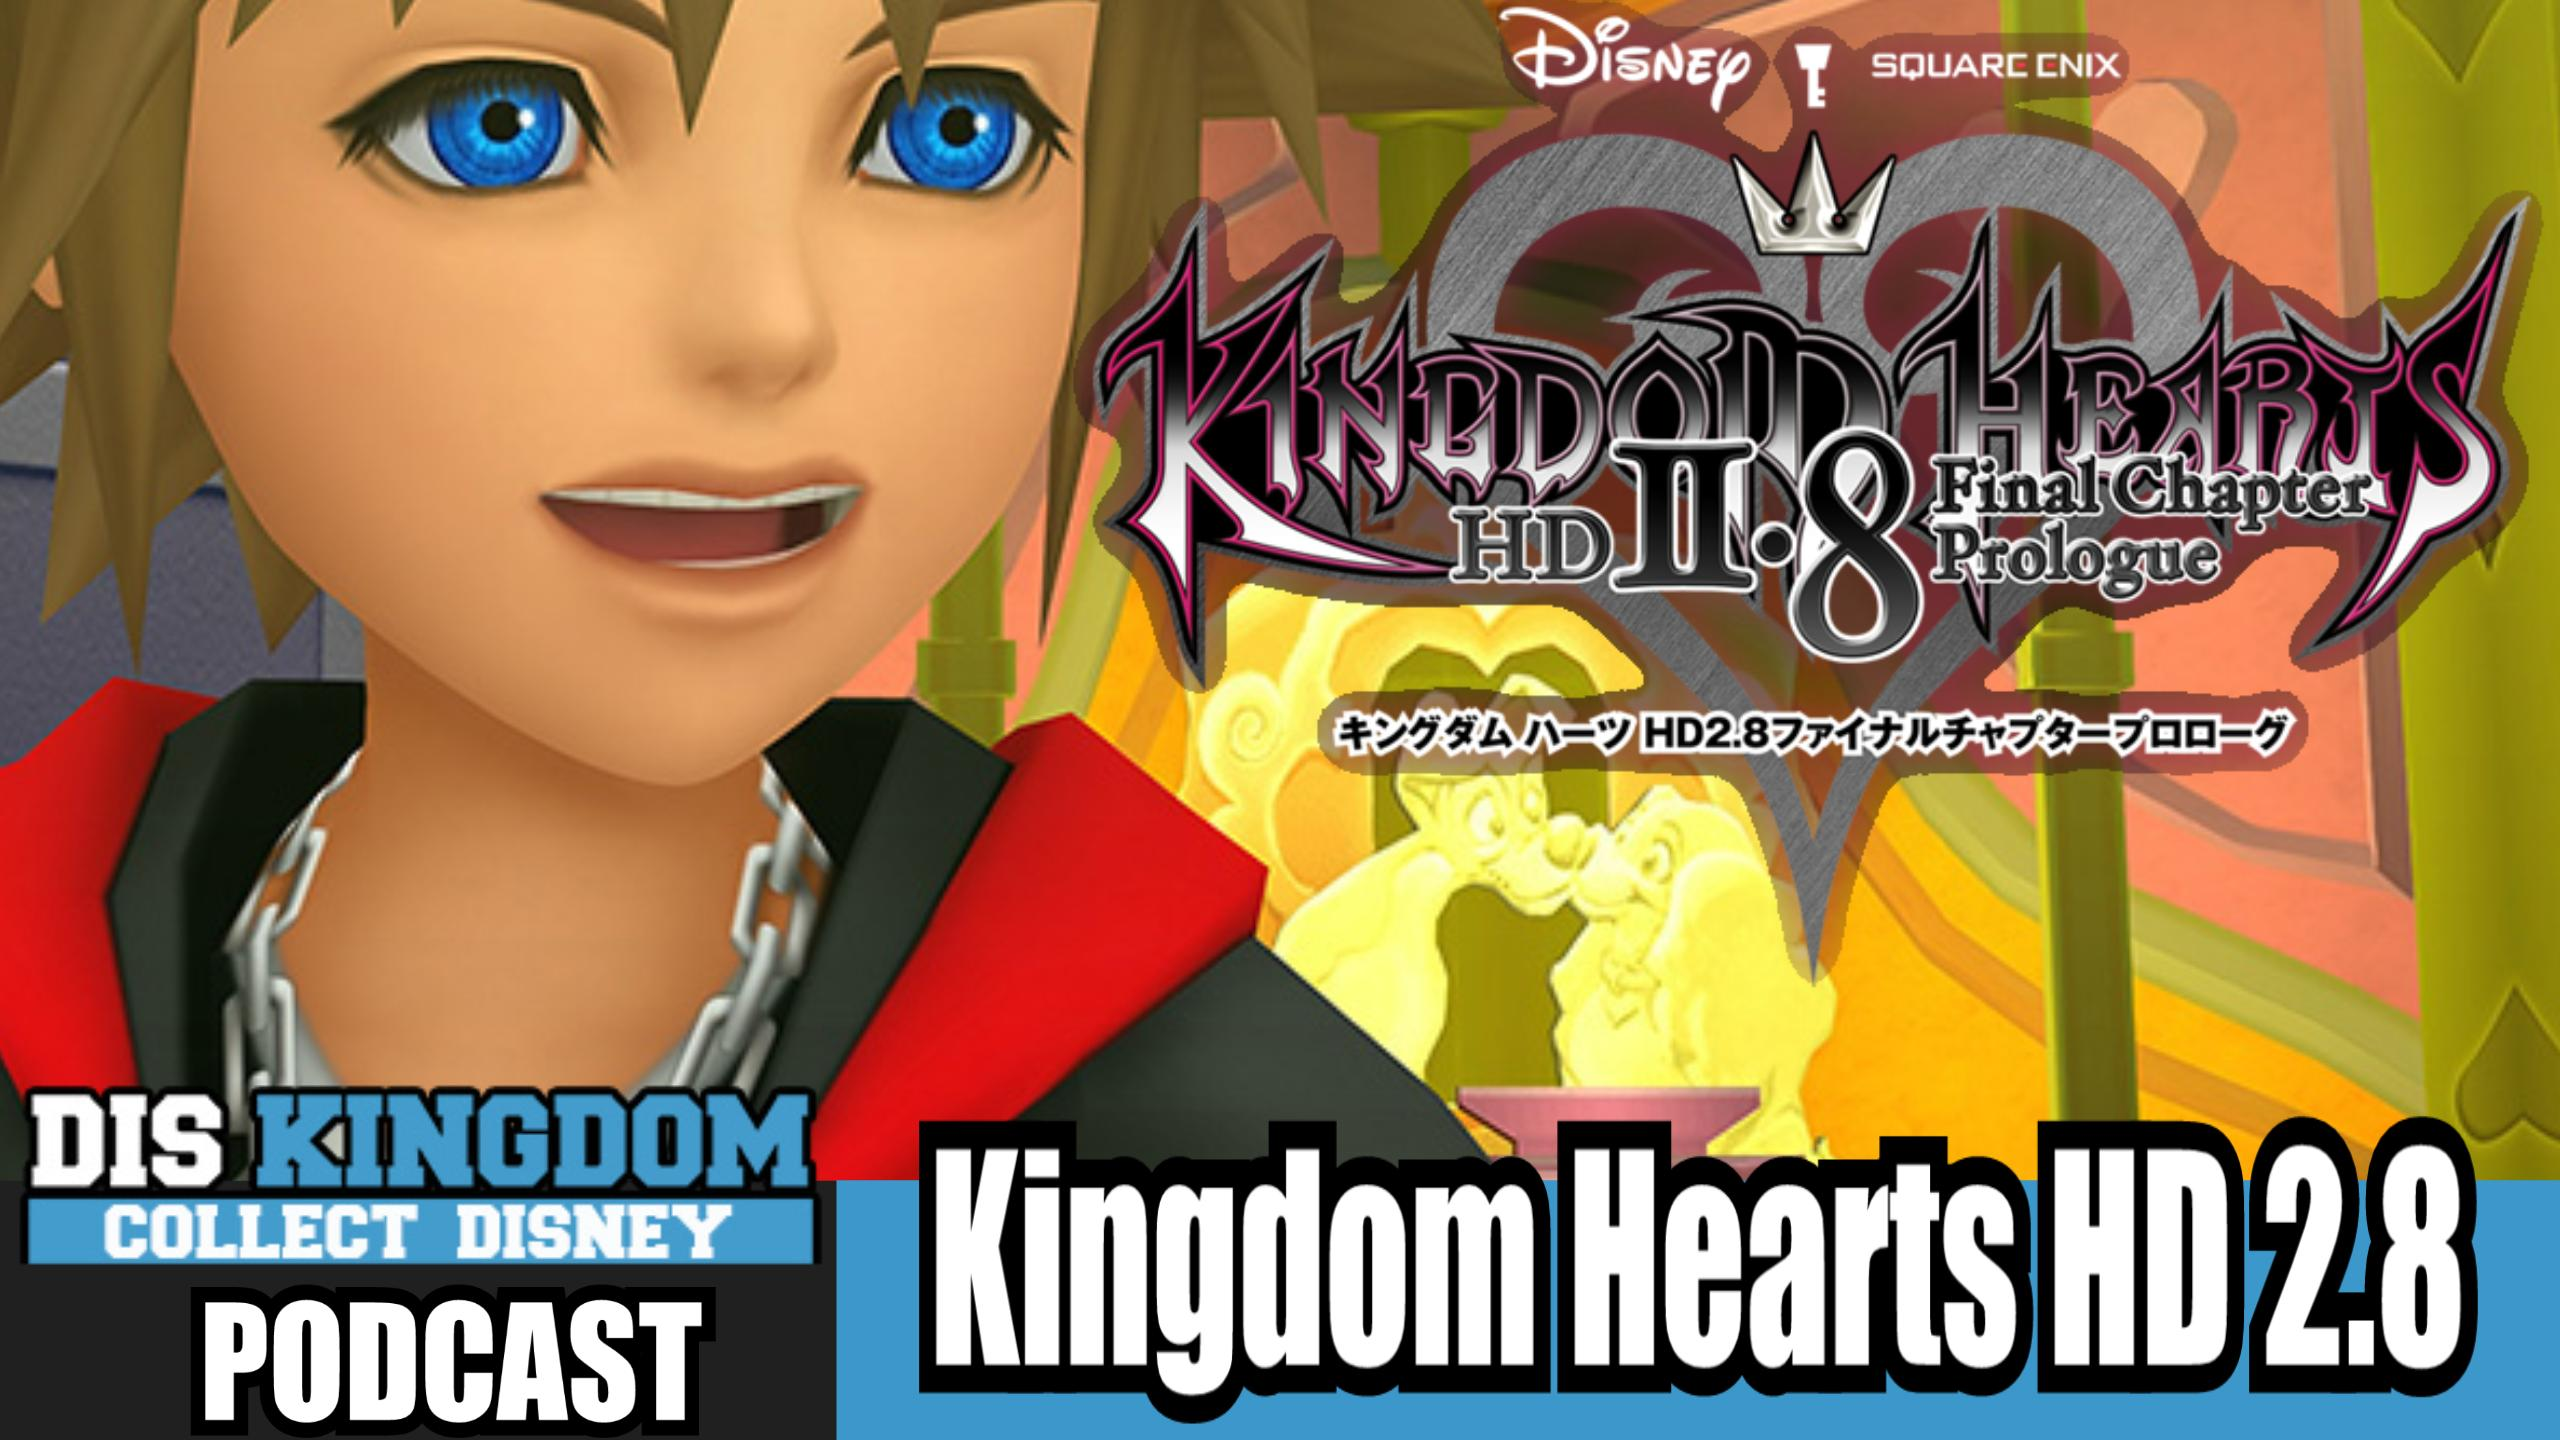 Kingdom Hearts HD 2.8 Final Chapter Prologue Reaction –  DK Podcast